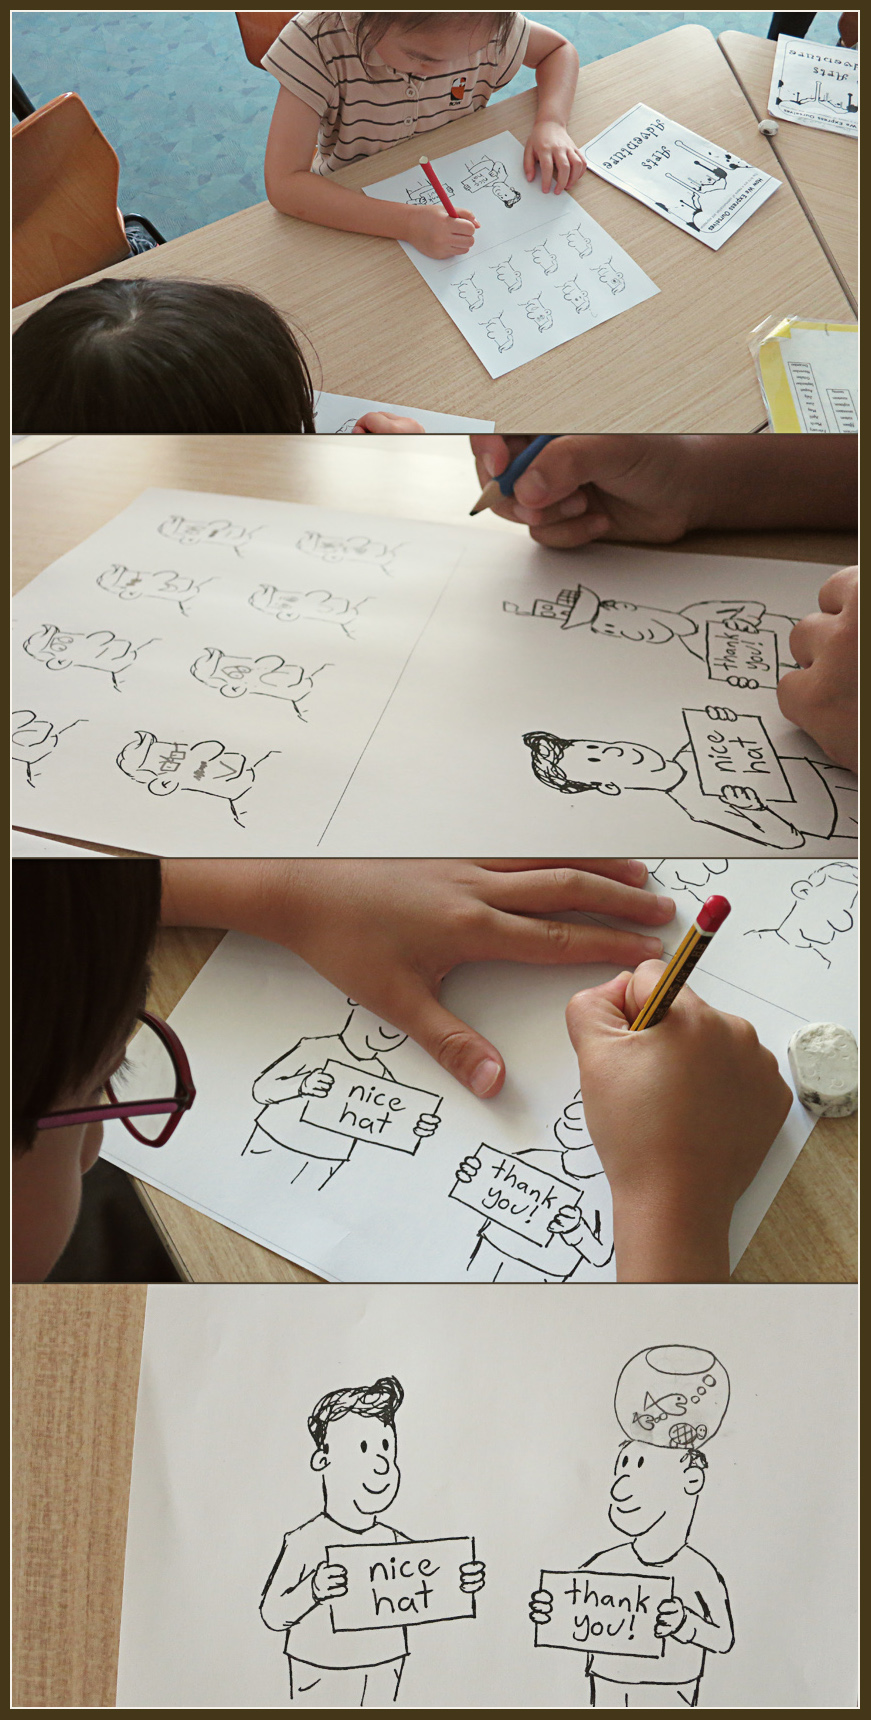 Art Adventure Day - cartooning. The Land of Le Beef, by Darren Lebeuf